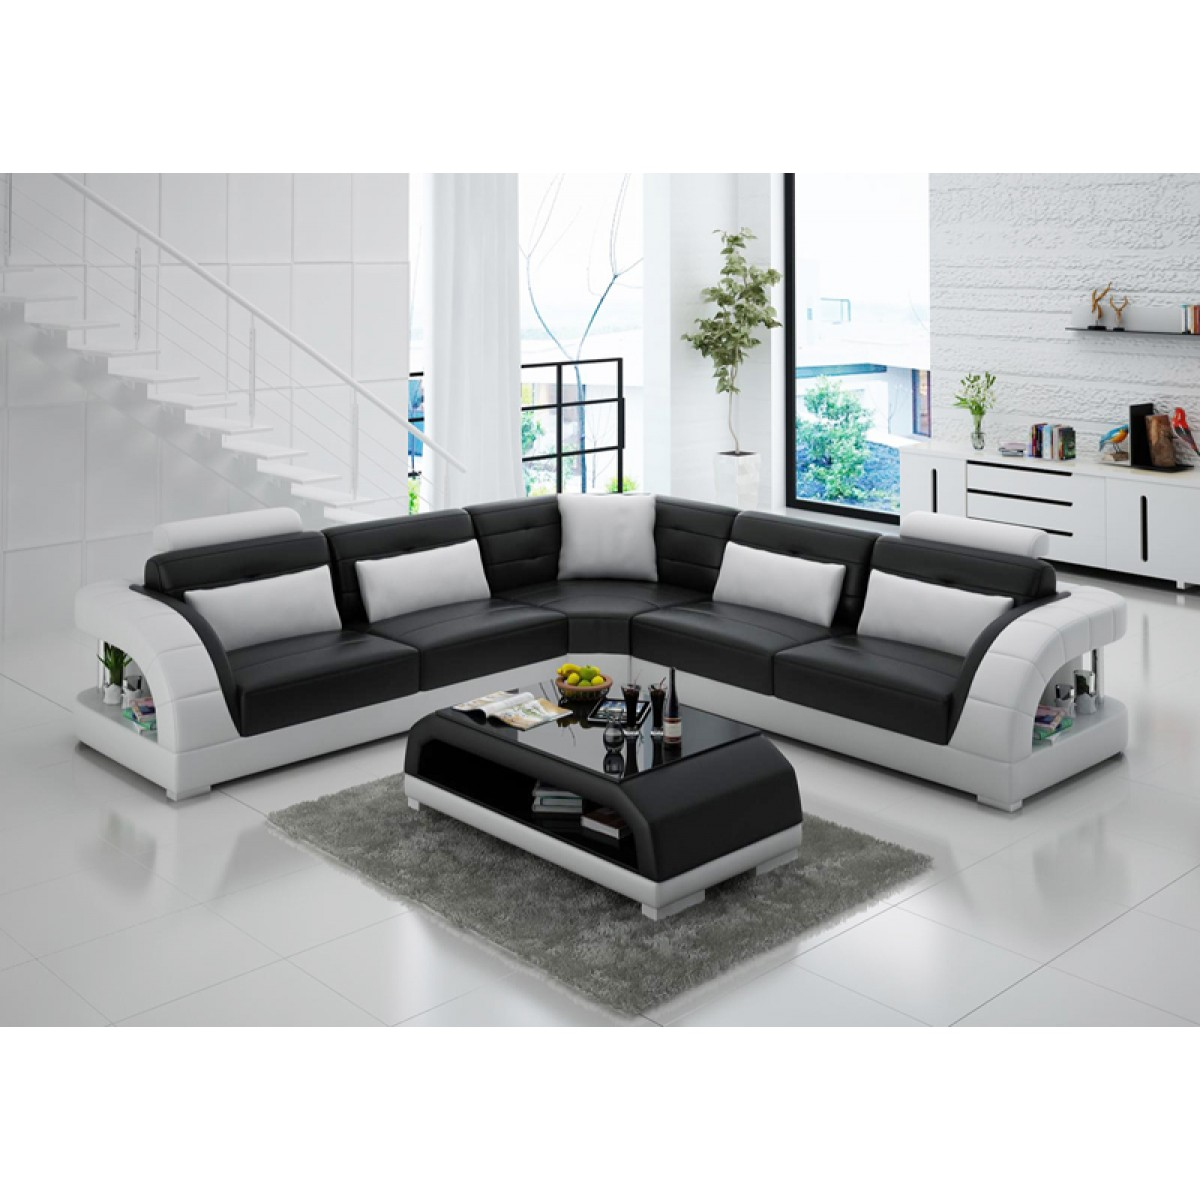 canape d angle grand royal sofa id e de canap et. Black Bedroom Furniture Sets. Home Design Ideas